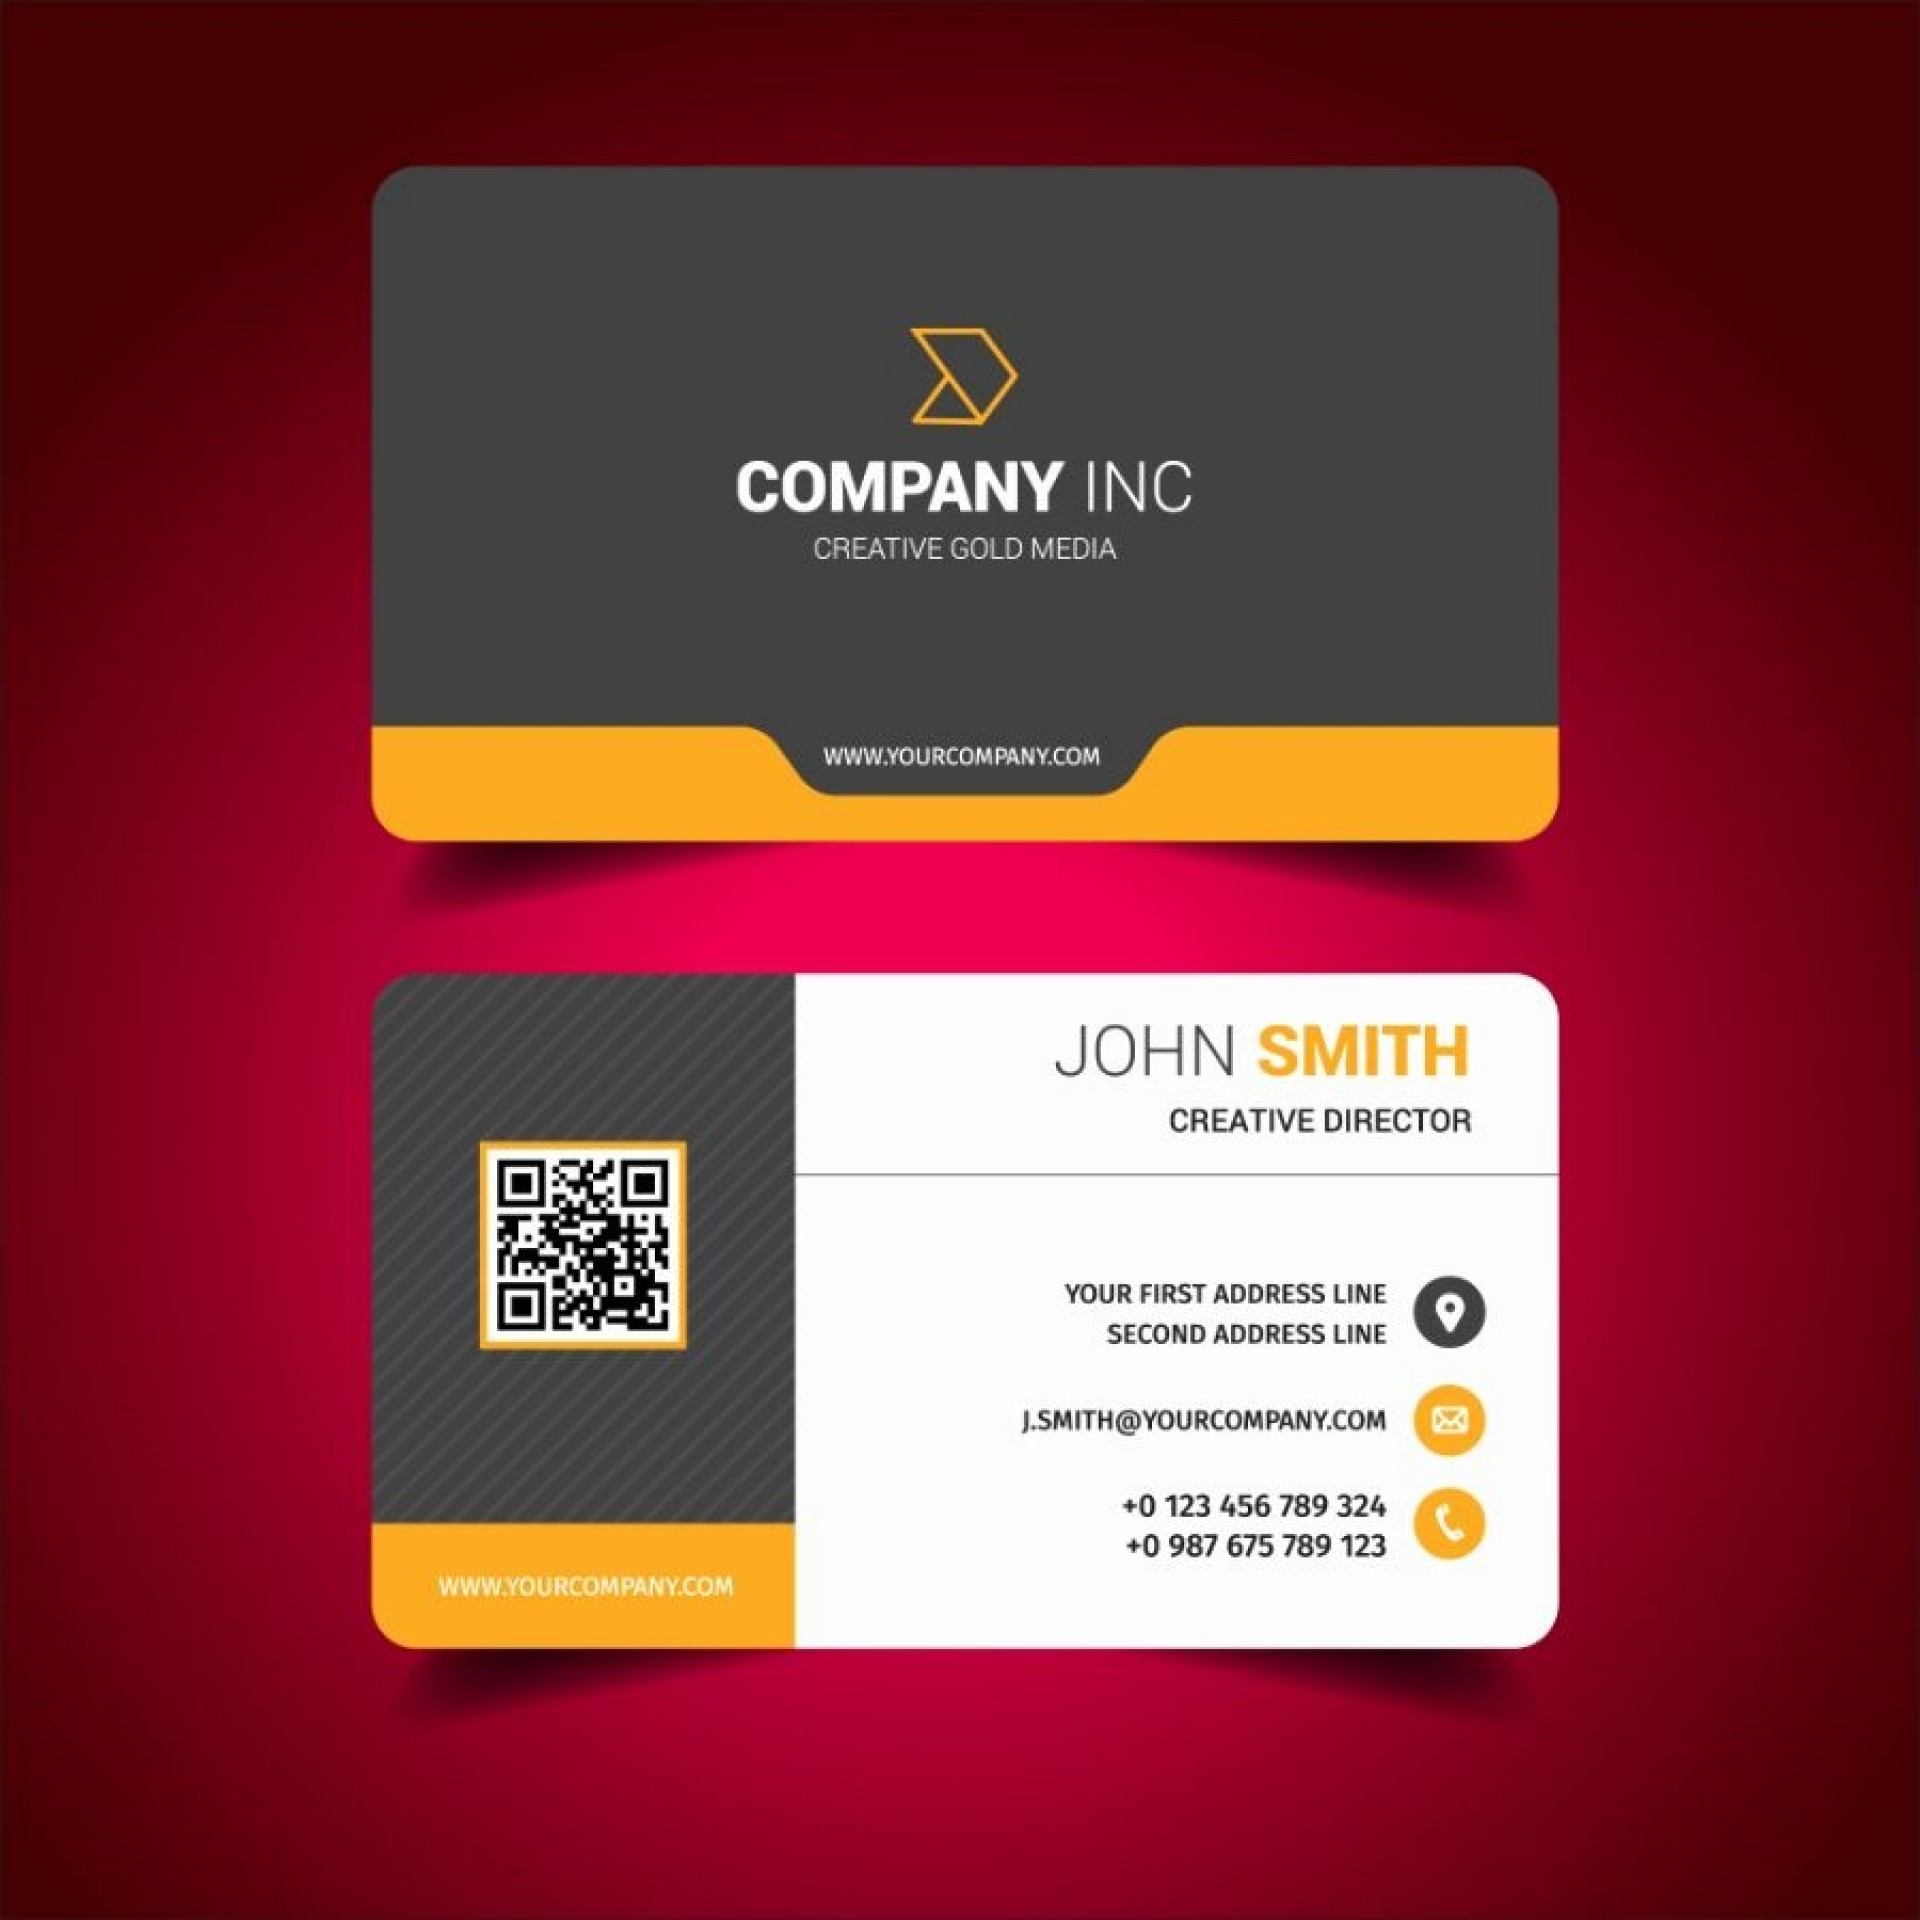 000 Imposing Free Busines Card Design Template  Templates Visiting Download Psd Photoshop1920